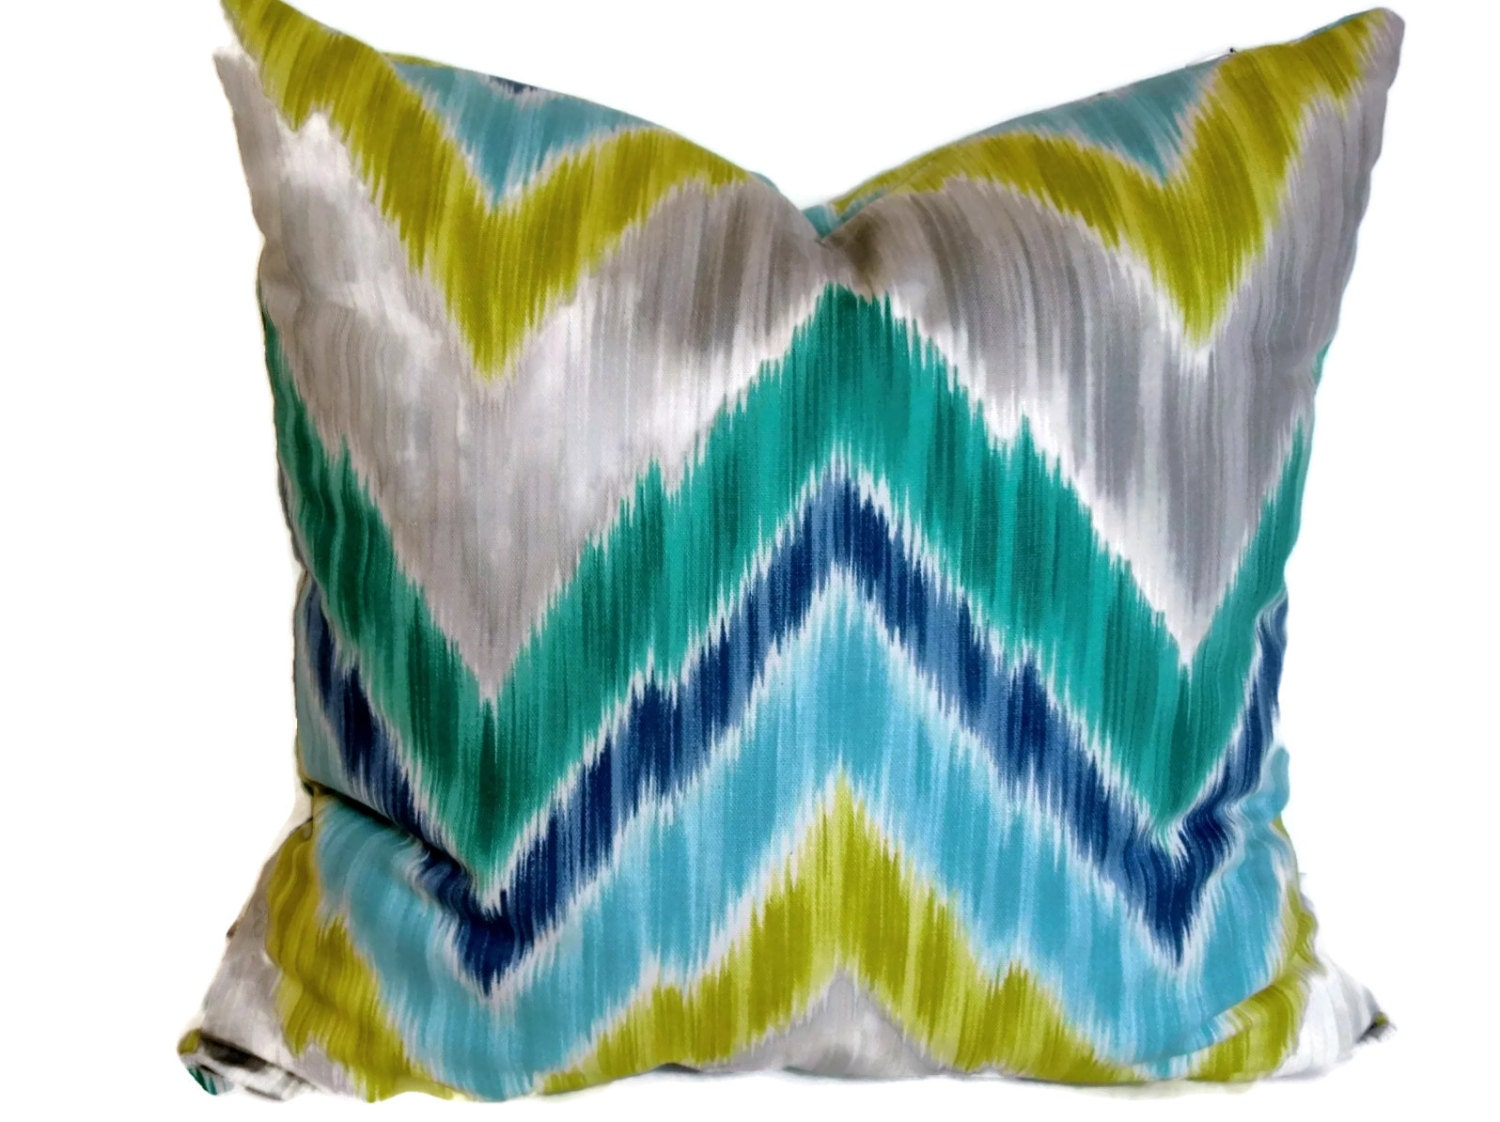 Wedgewood Blue Throw Pillows : Braemore Wedgewood Blue & Grey Ikat Decorative Pillow 18x18